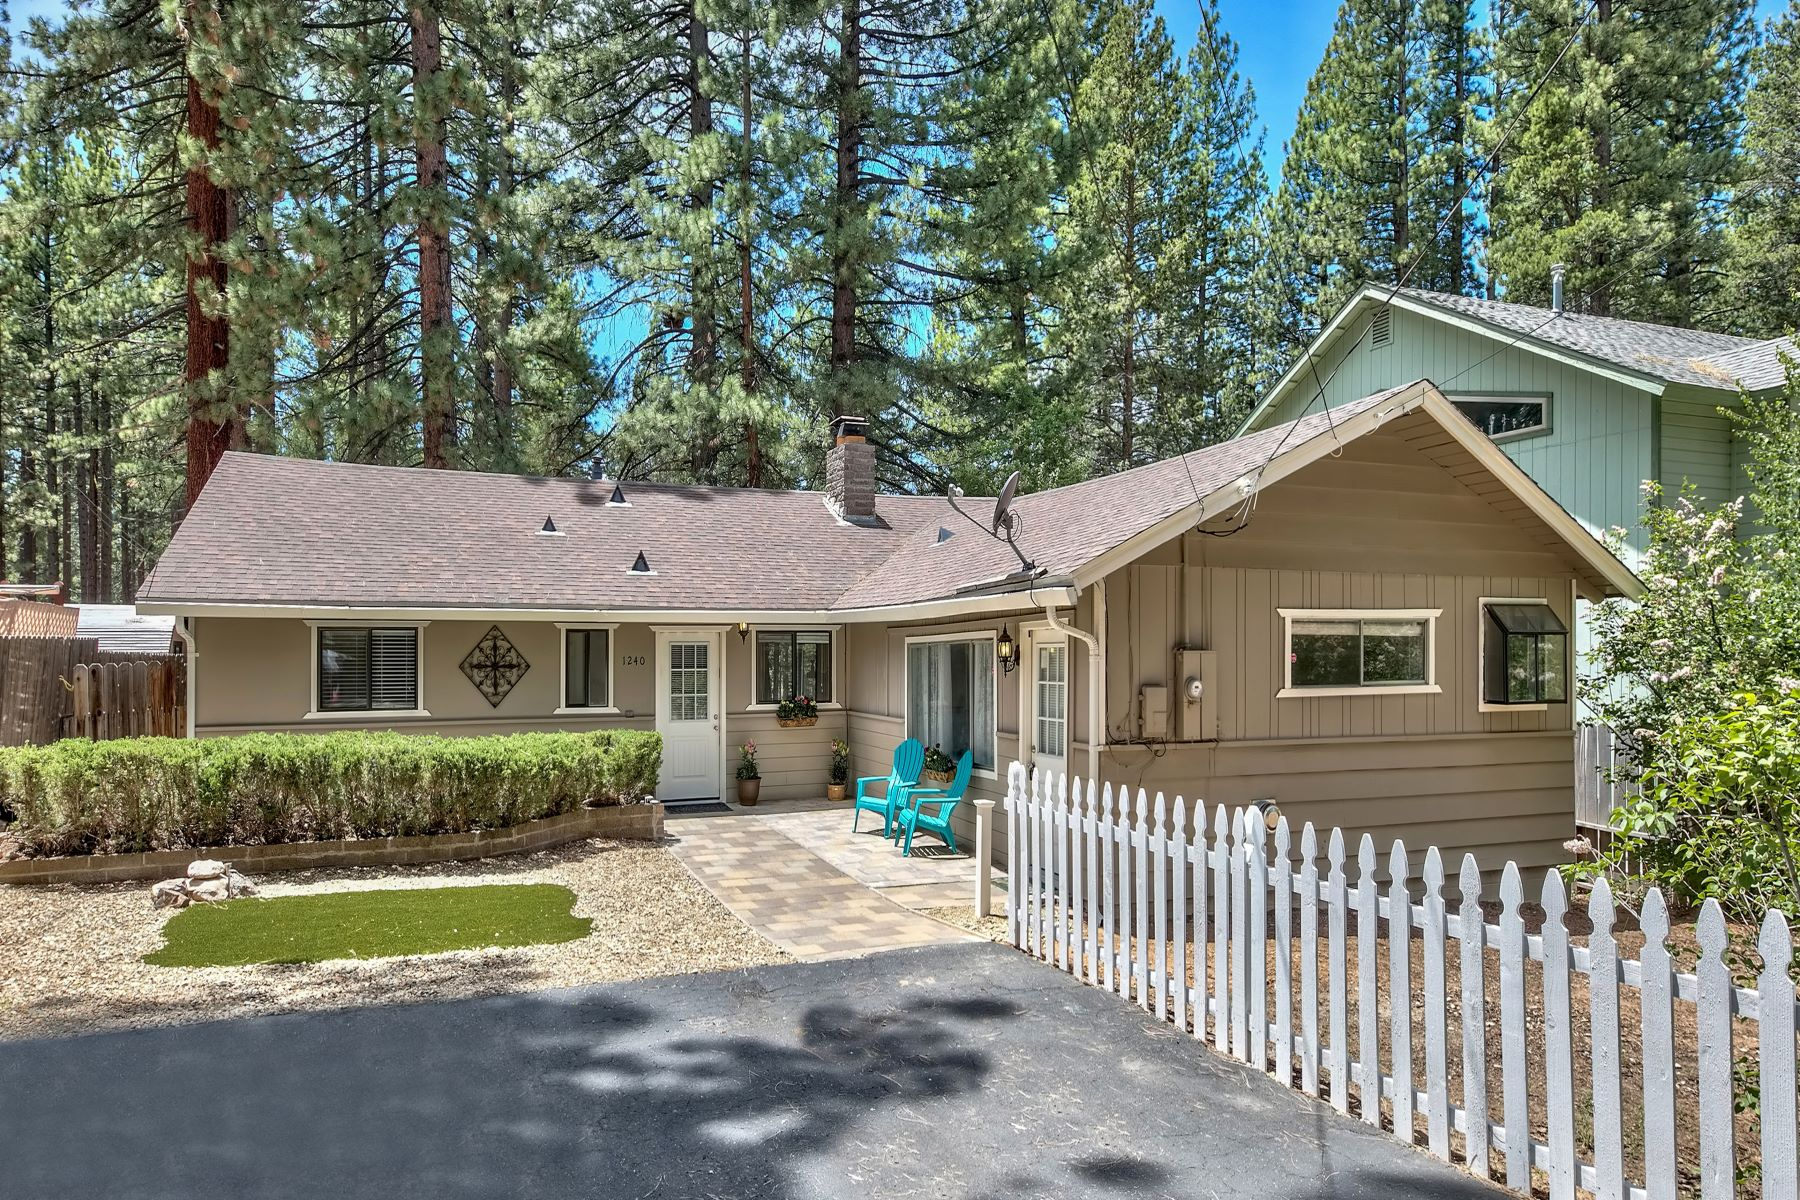 Property for Active at Tahoe Sierra Getaway on Meadow 1240 Beecher Avenue South Lake Tahoe, California 96150 United States